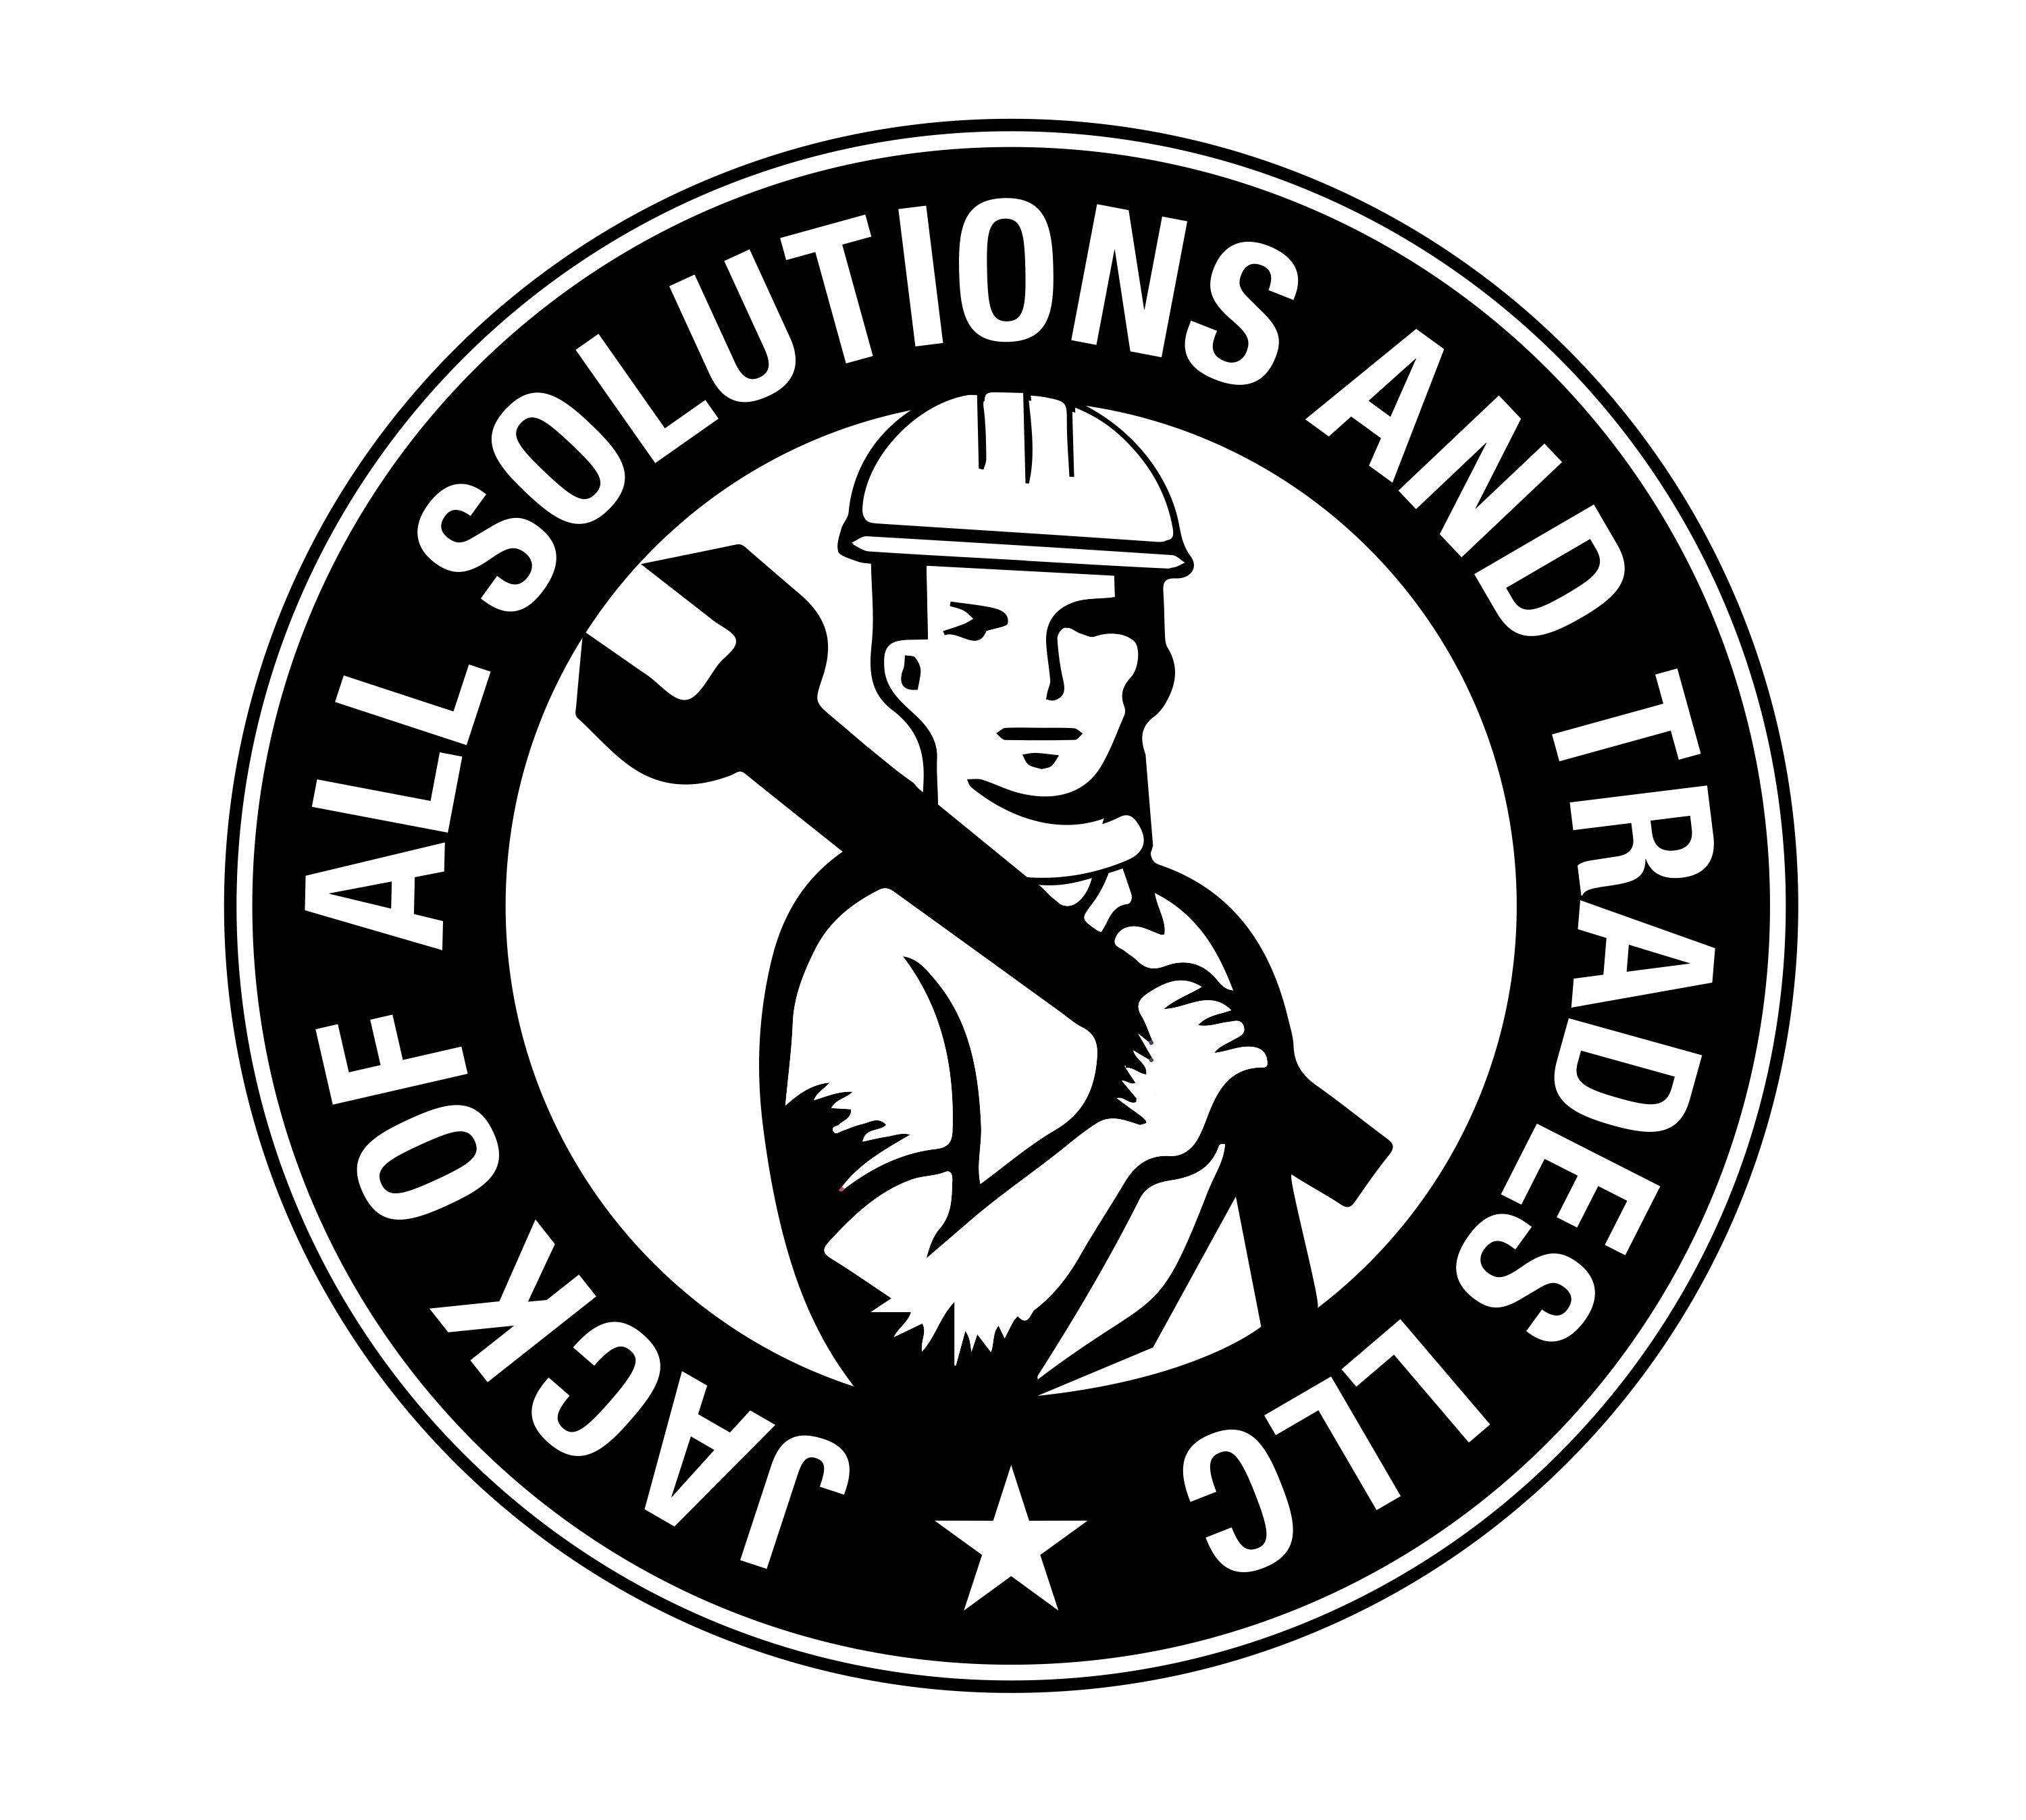 jack of all solutions and trades llc